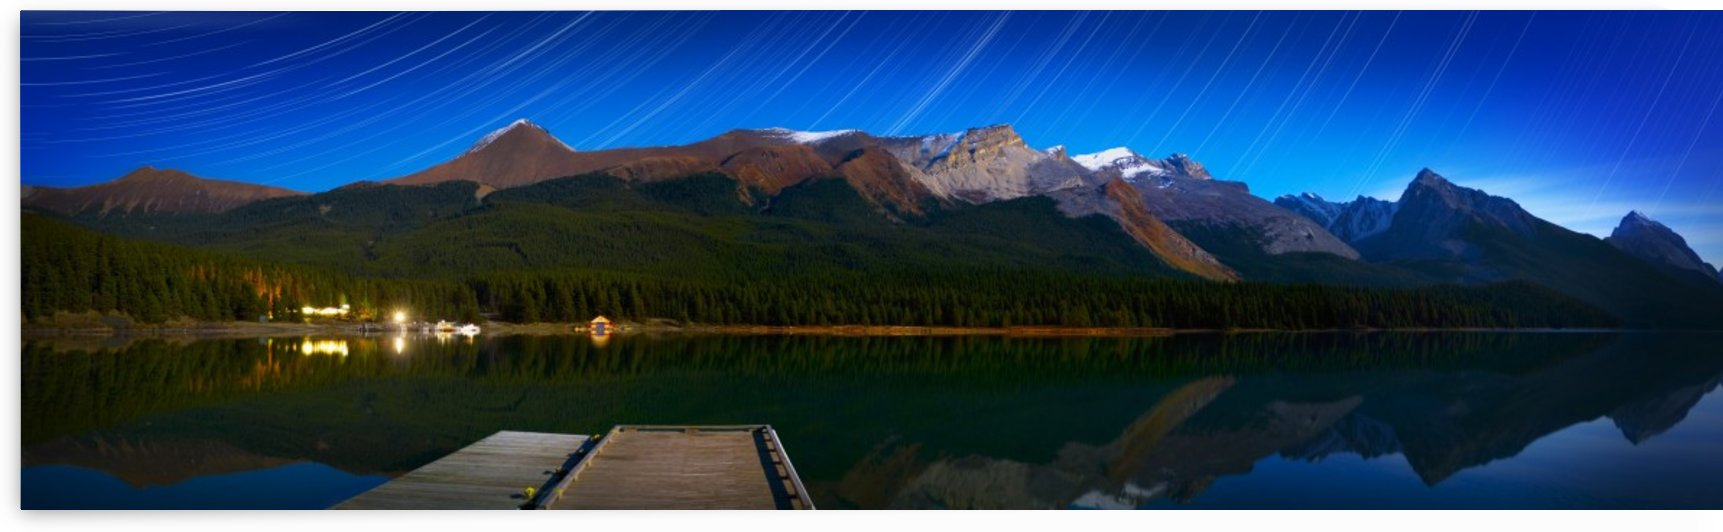 Starry Night Panoramic Of Mountains And Lake, Jasper National Park, Alberta, Canada by PacificStock